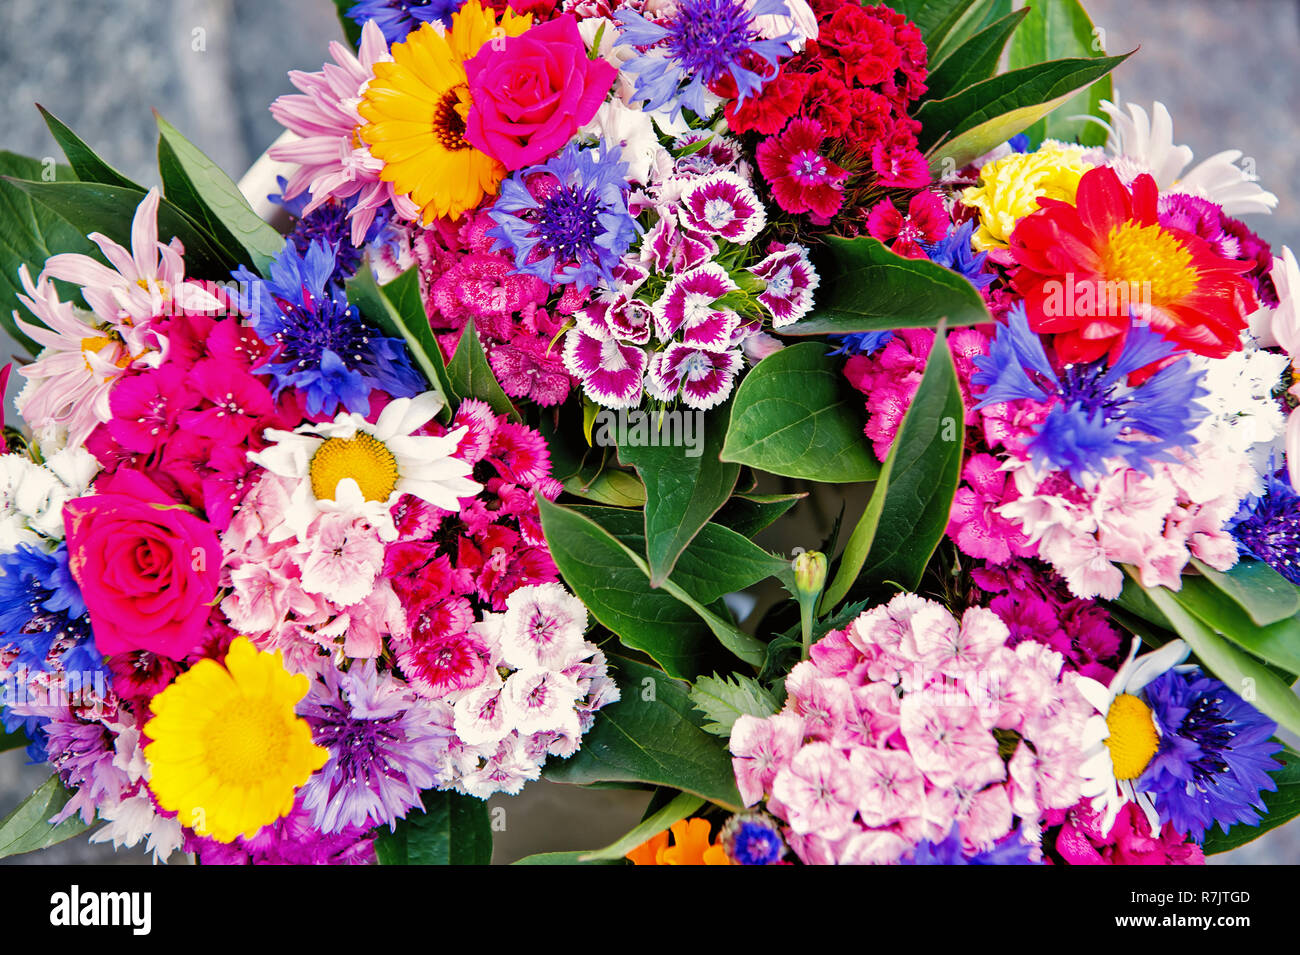 Flower bouquet in krakow, poland on colorful floral background. Blossom, beauty, flourishing concept - Stock Image